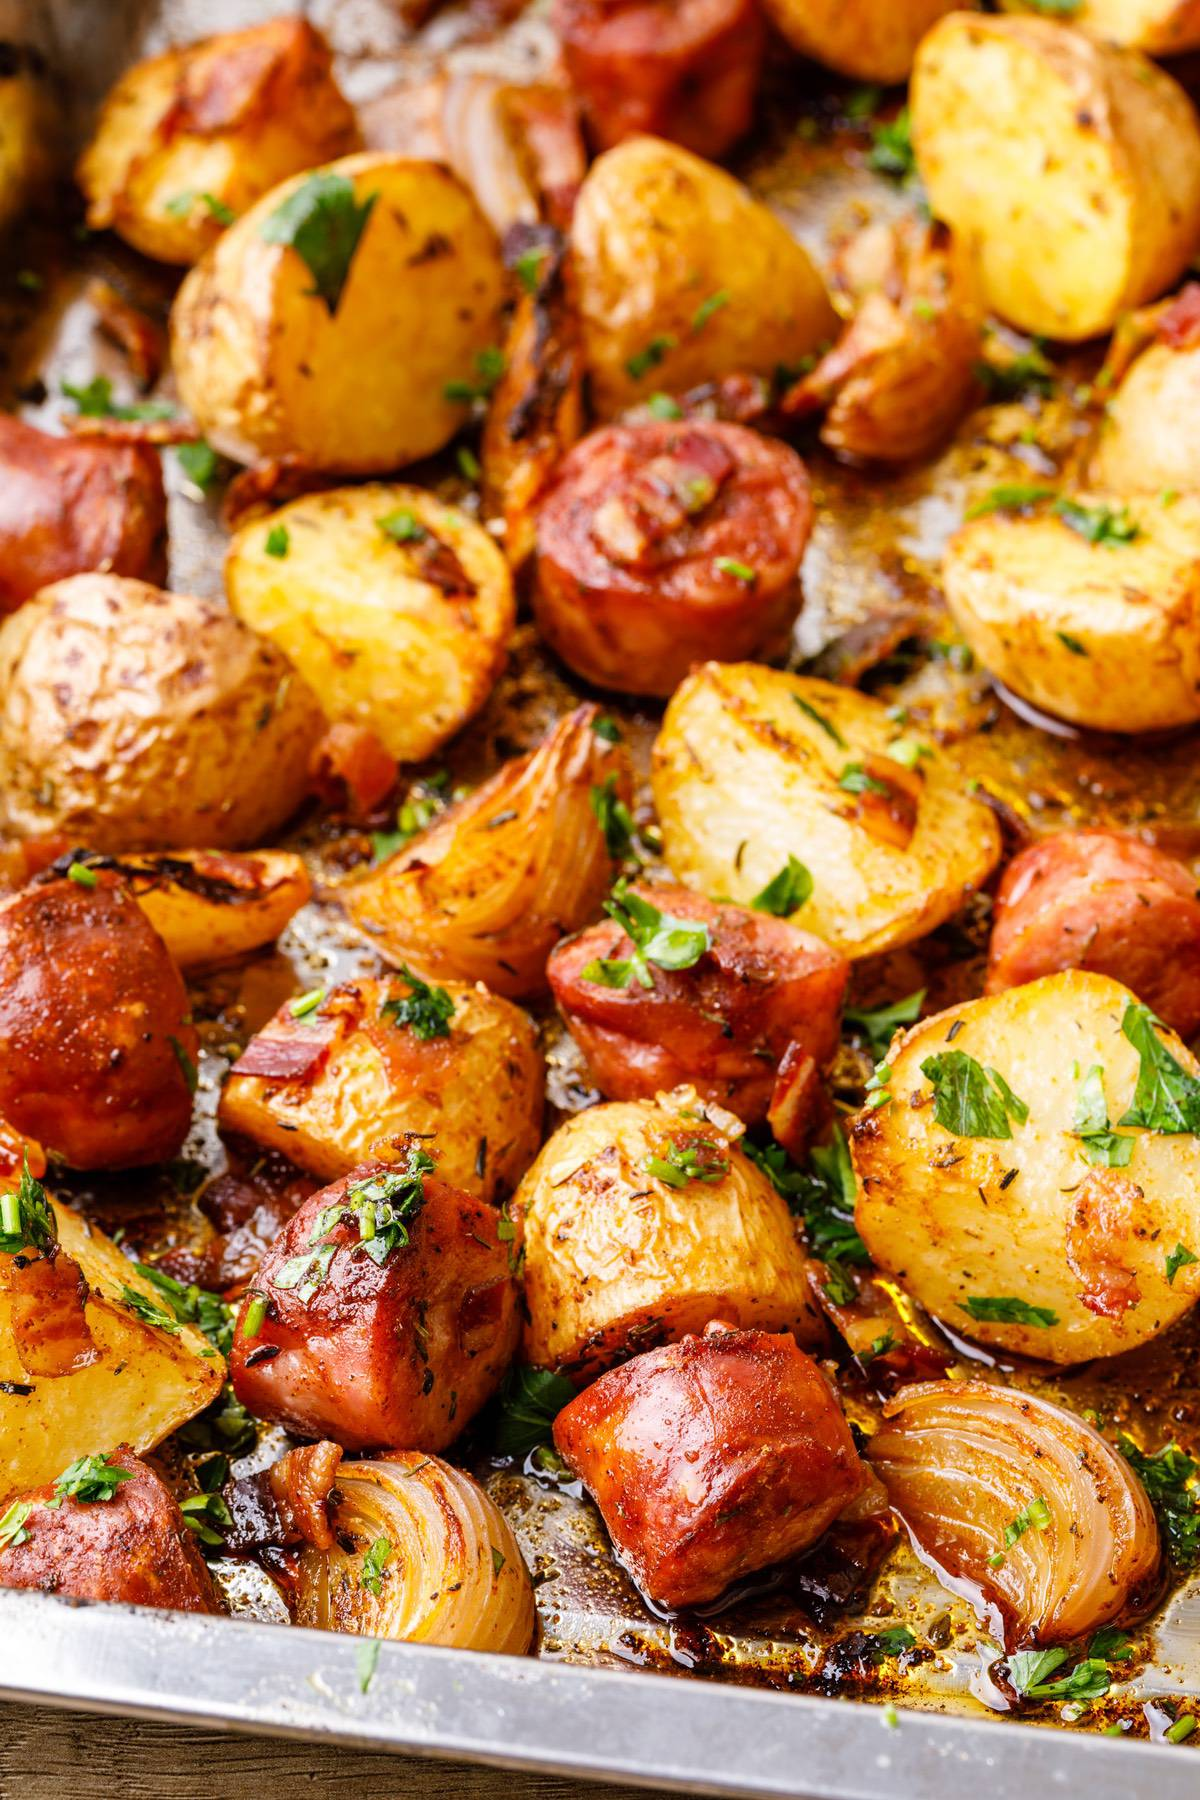 Baked Sheet Pan Sausage And Potatoes Recipe